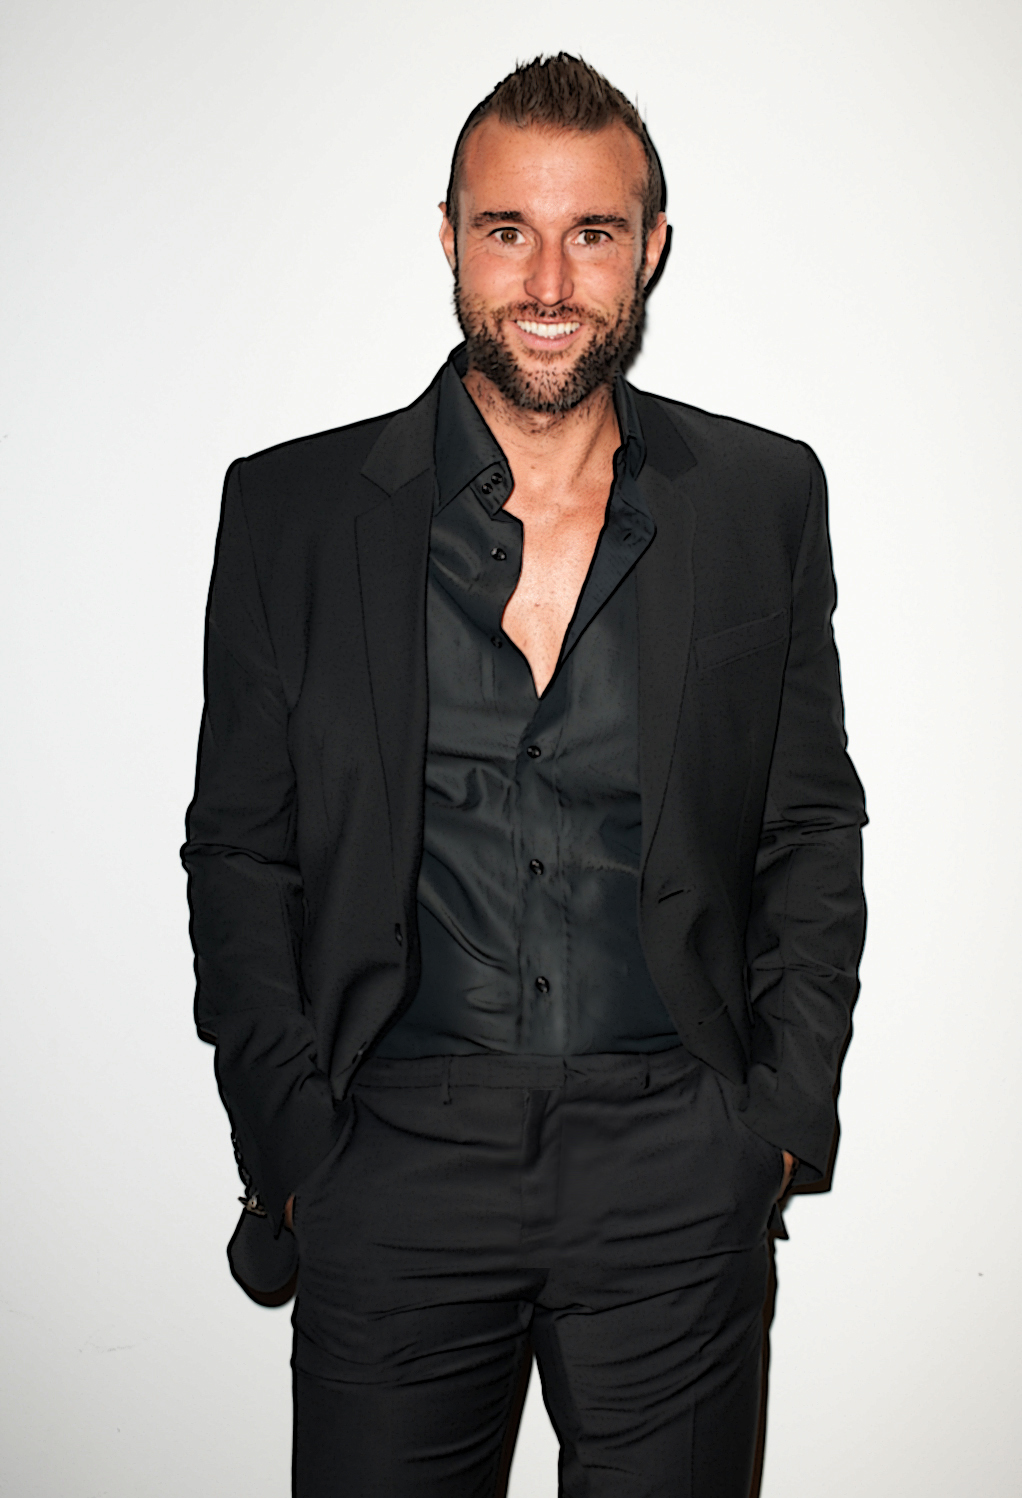 Philipp Plein Wikipedia